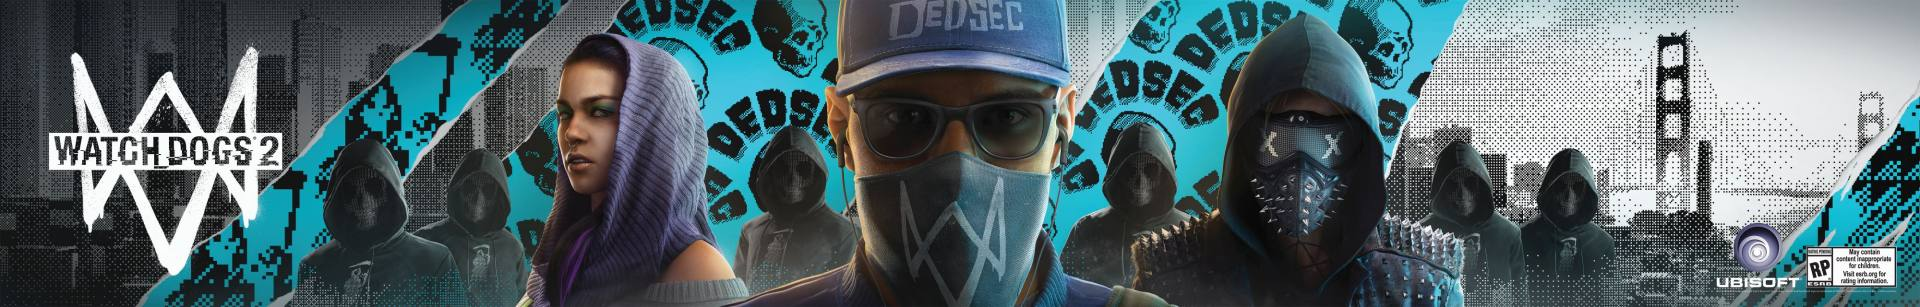 Watch-Dogs-2_2016_06-13-16_009